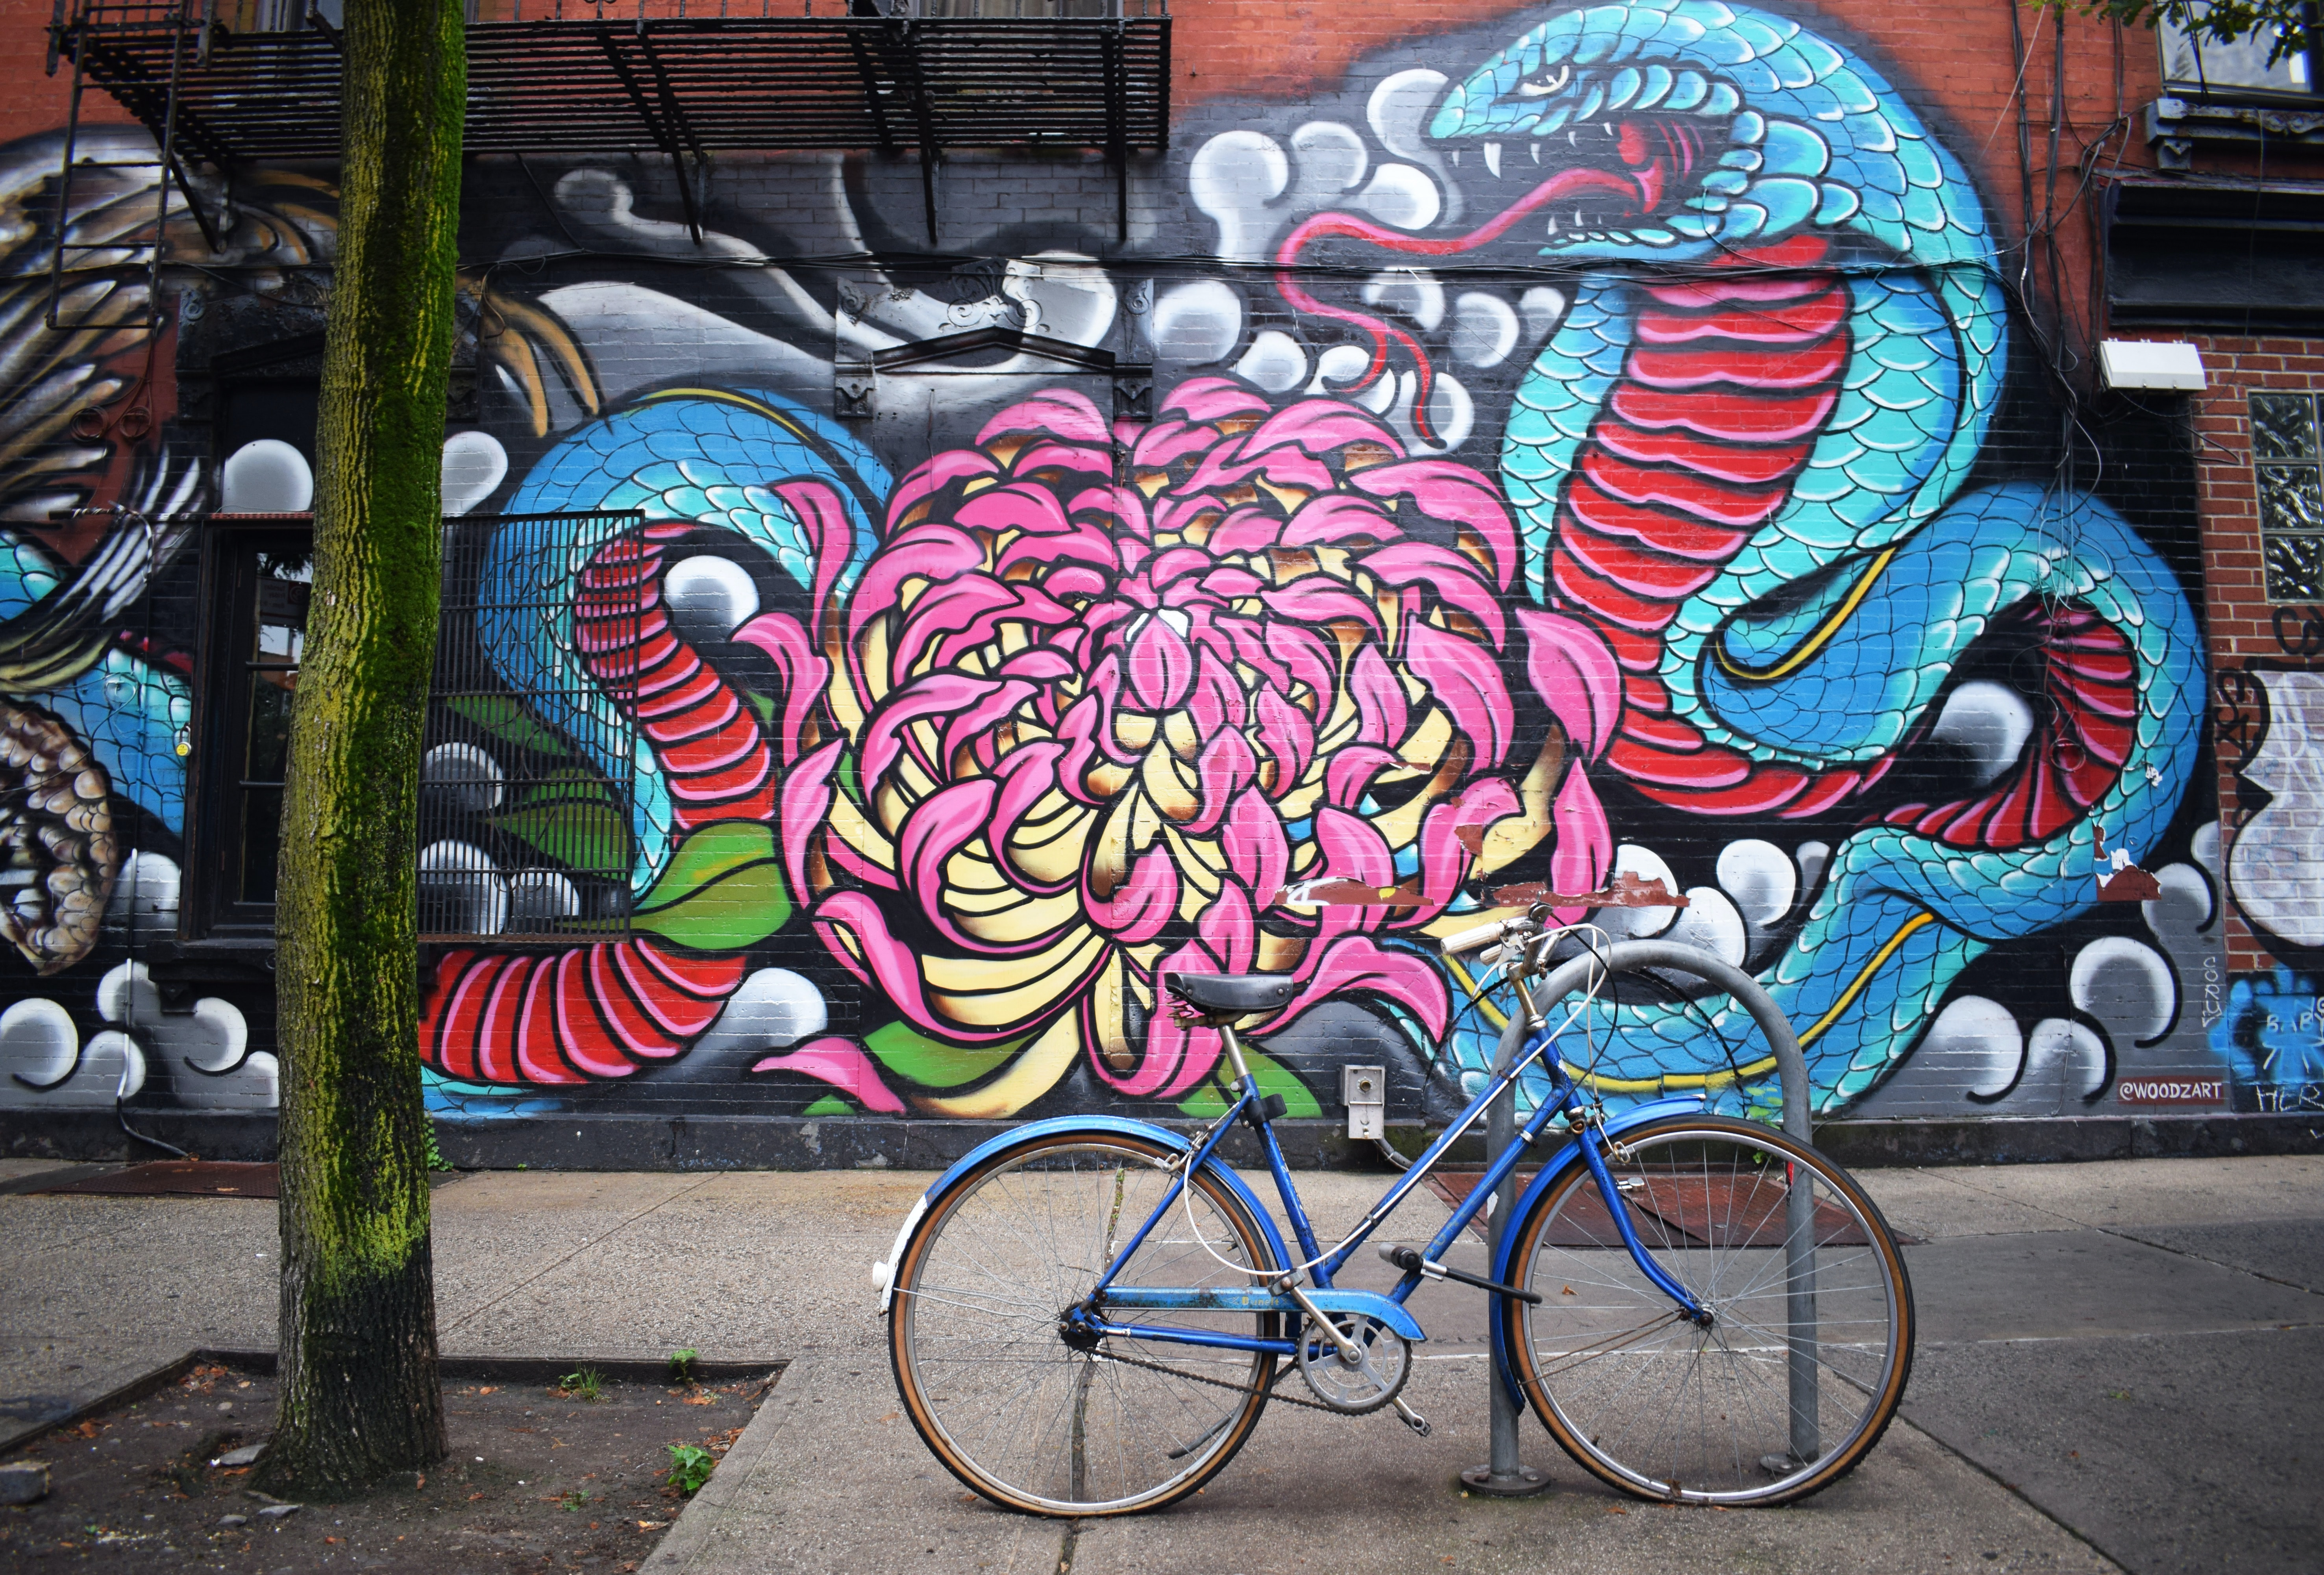 Colorful urban graffiti street art with floral snake design and blue bike with thin tree trunk